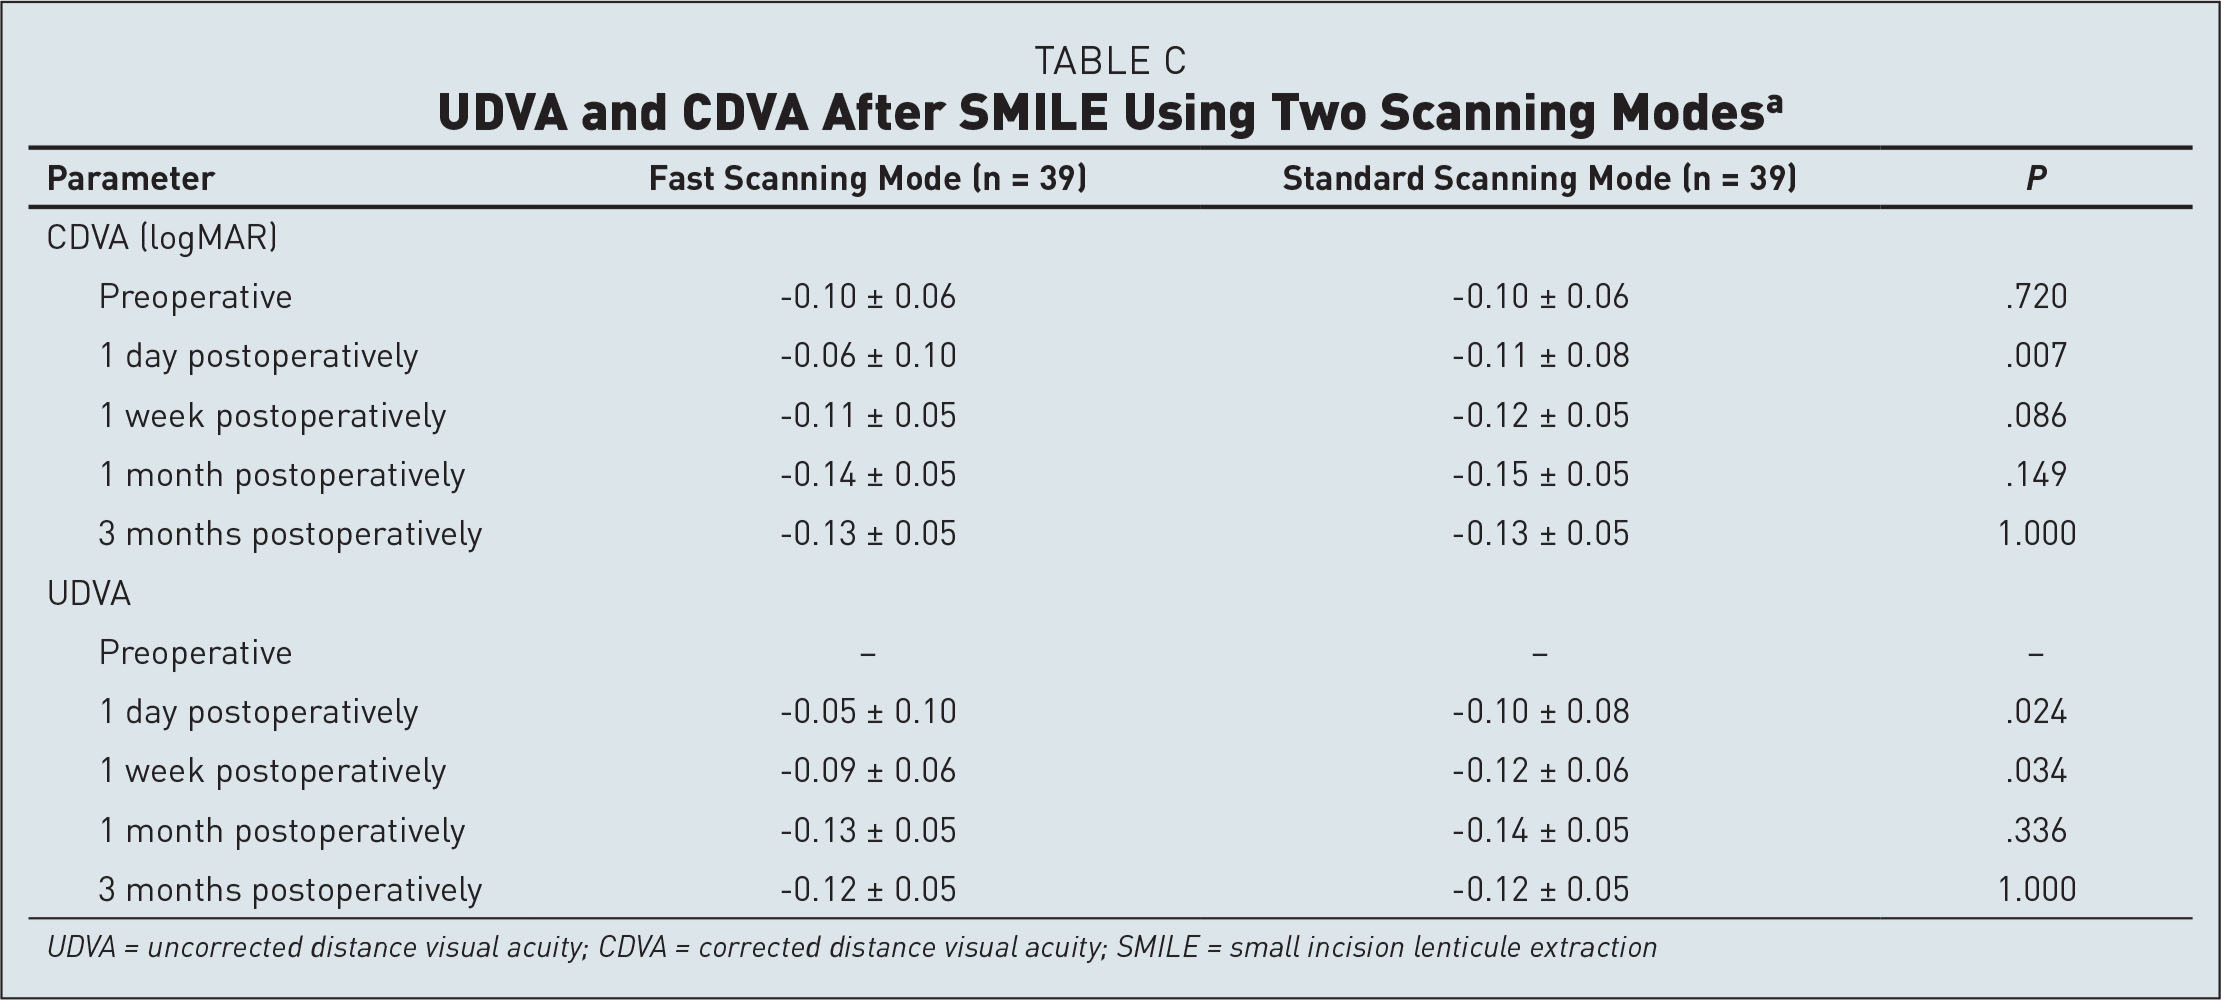 UDVA and CDVA After SMILE Using Two Scanning Modesa